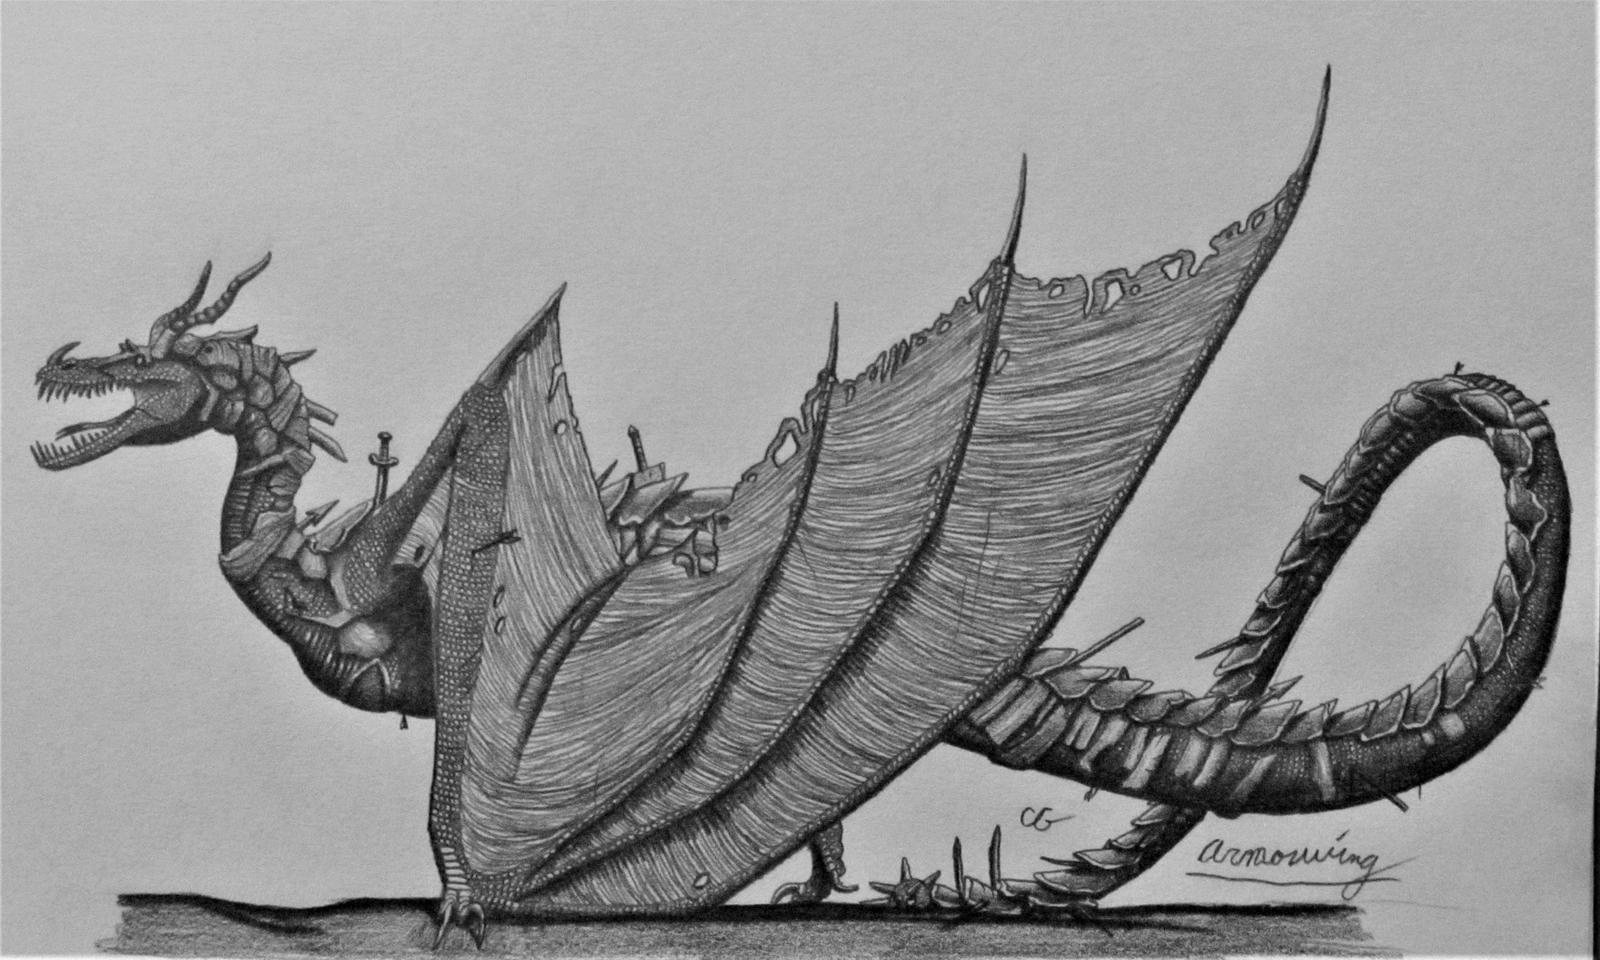 How To Train Your Dragon Armorwing By Acrosaurotaurus On Deviantart Equipped in the cloak slot, this artifact gives you +2 to both spell power and knowledge. how to train your dragon armorwing by